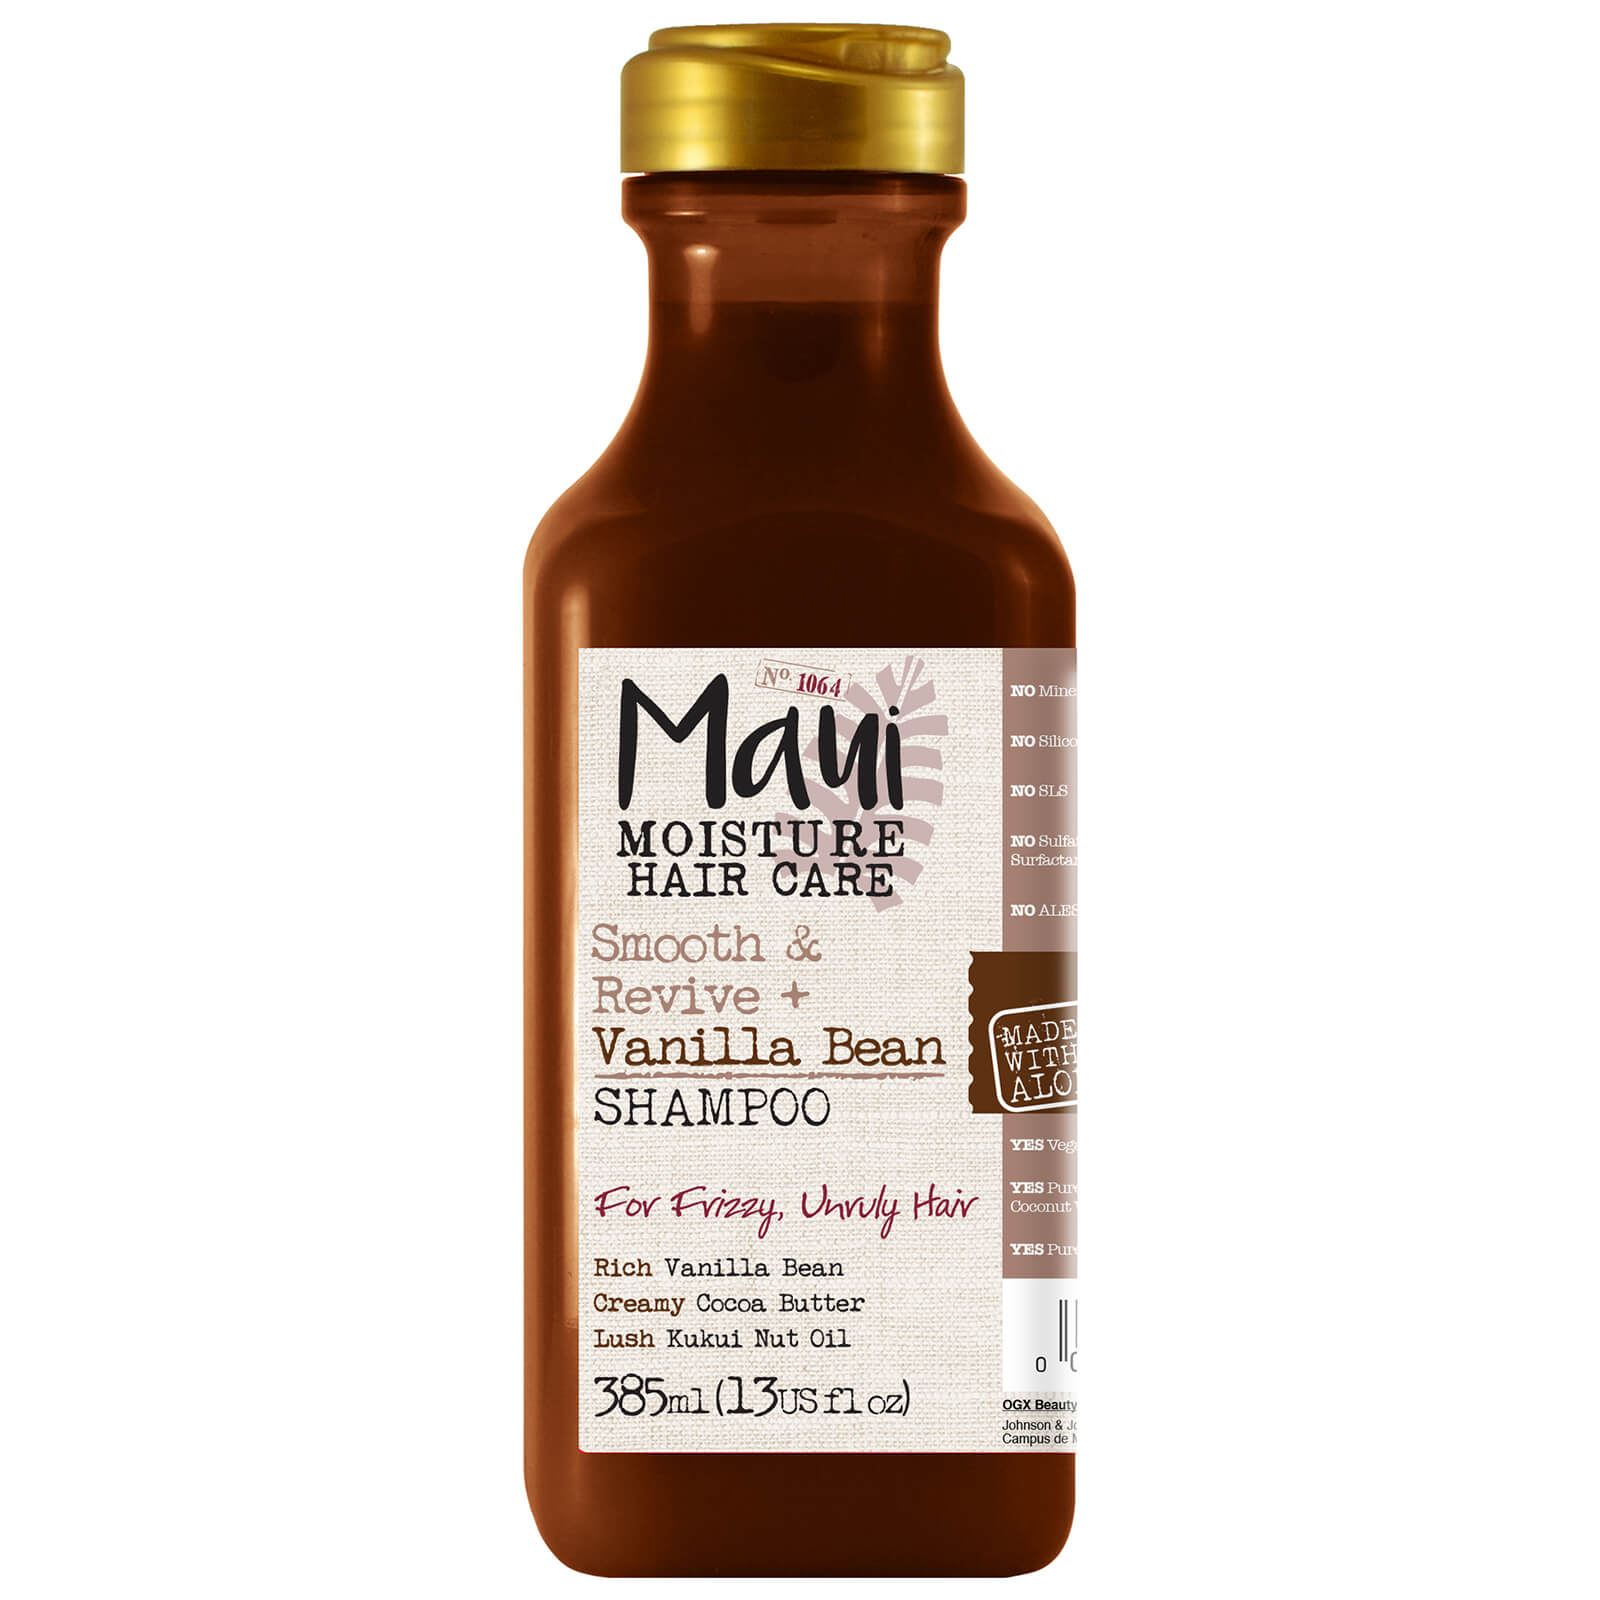 Купить Maui Moisture Smooth and Revive+ Vanilla Bean Shampoo 385ml